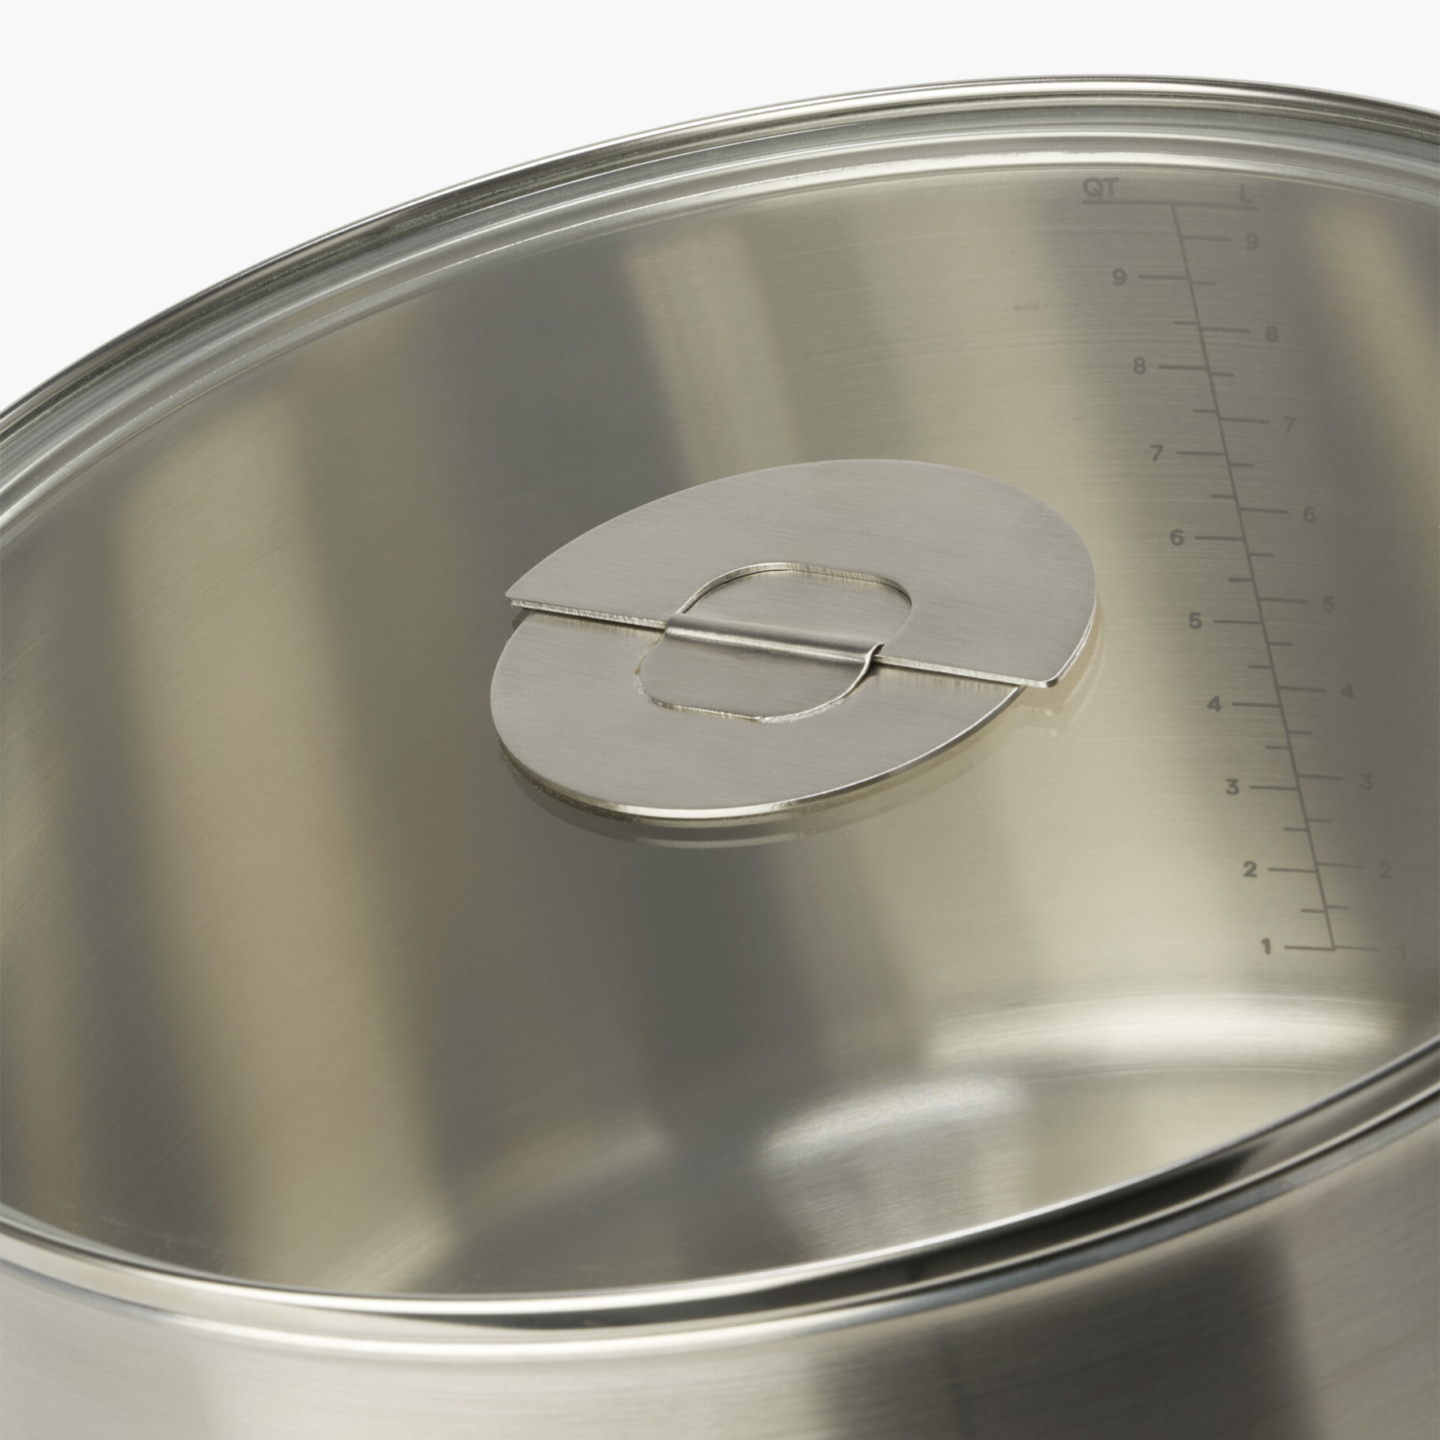 ENSEMBL Stackware Stockpot Metric and Imperial Measurements Flat Lying Lid